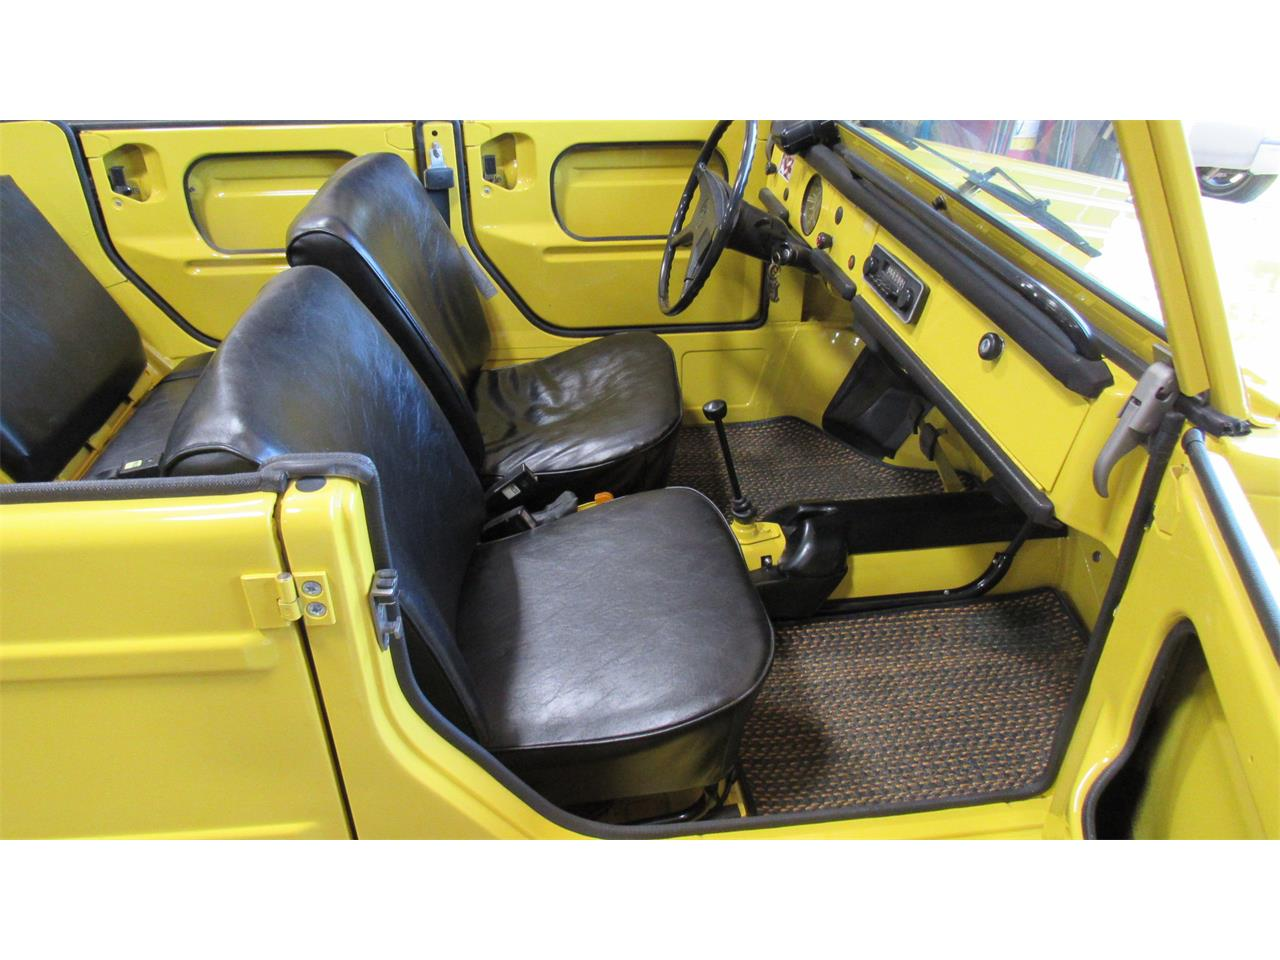 Large Picture of '74 Volkswagen Thing - $19,995.00 - QFWI